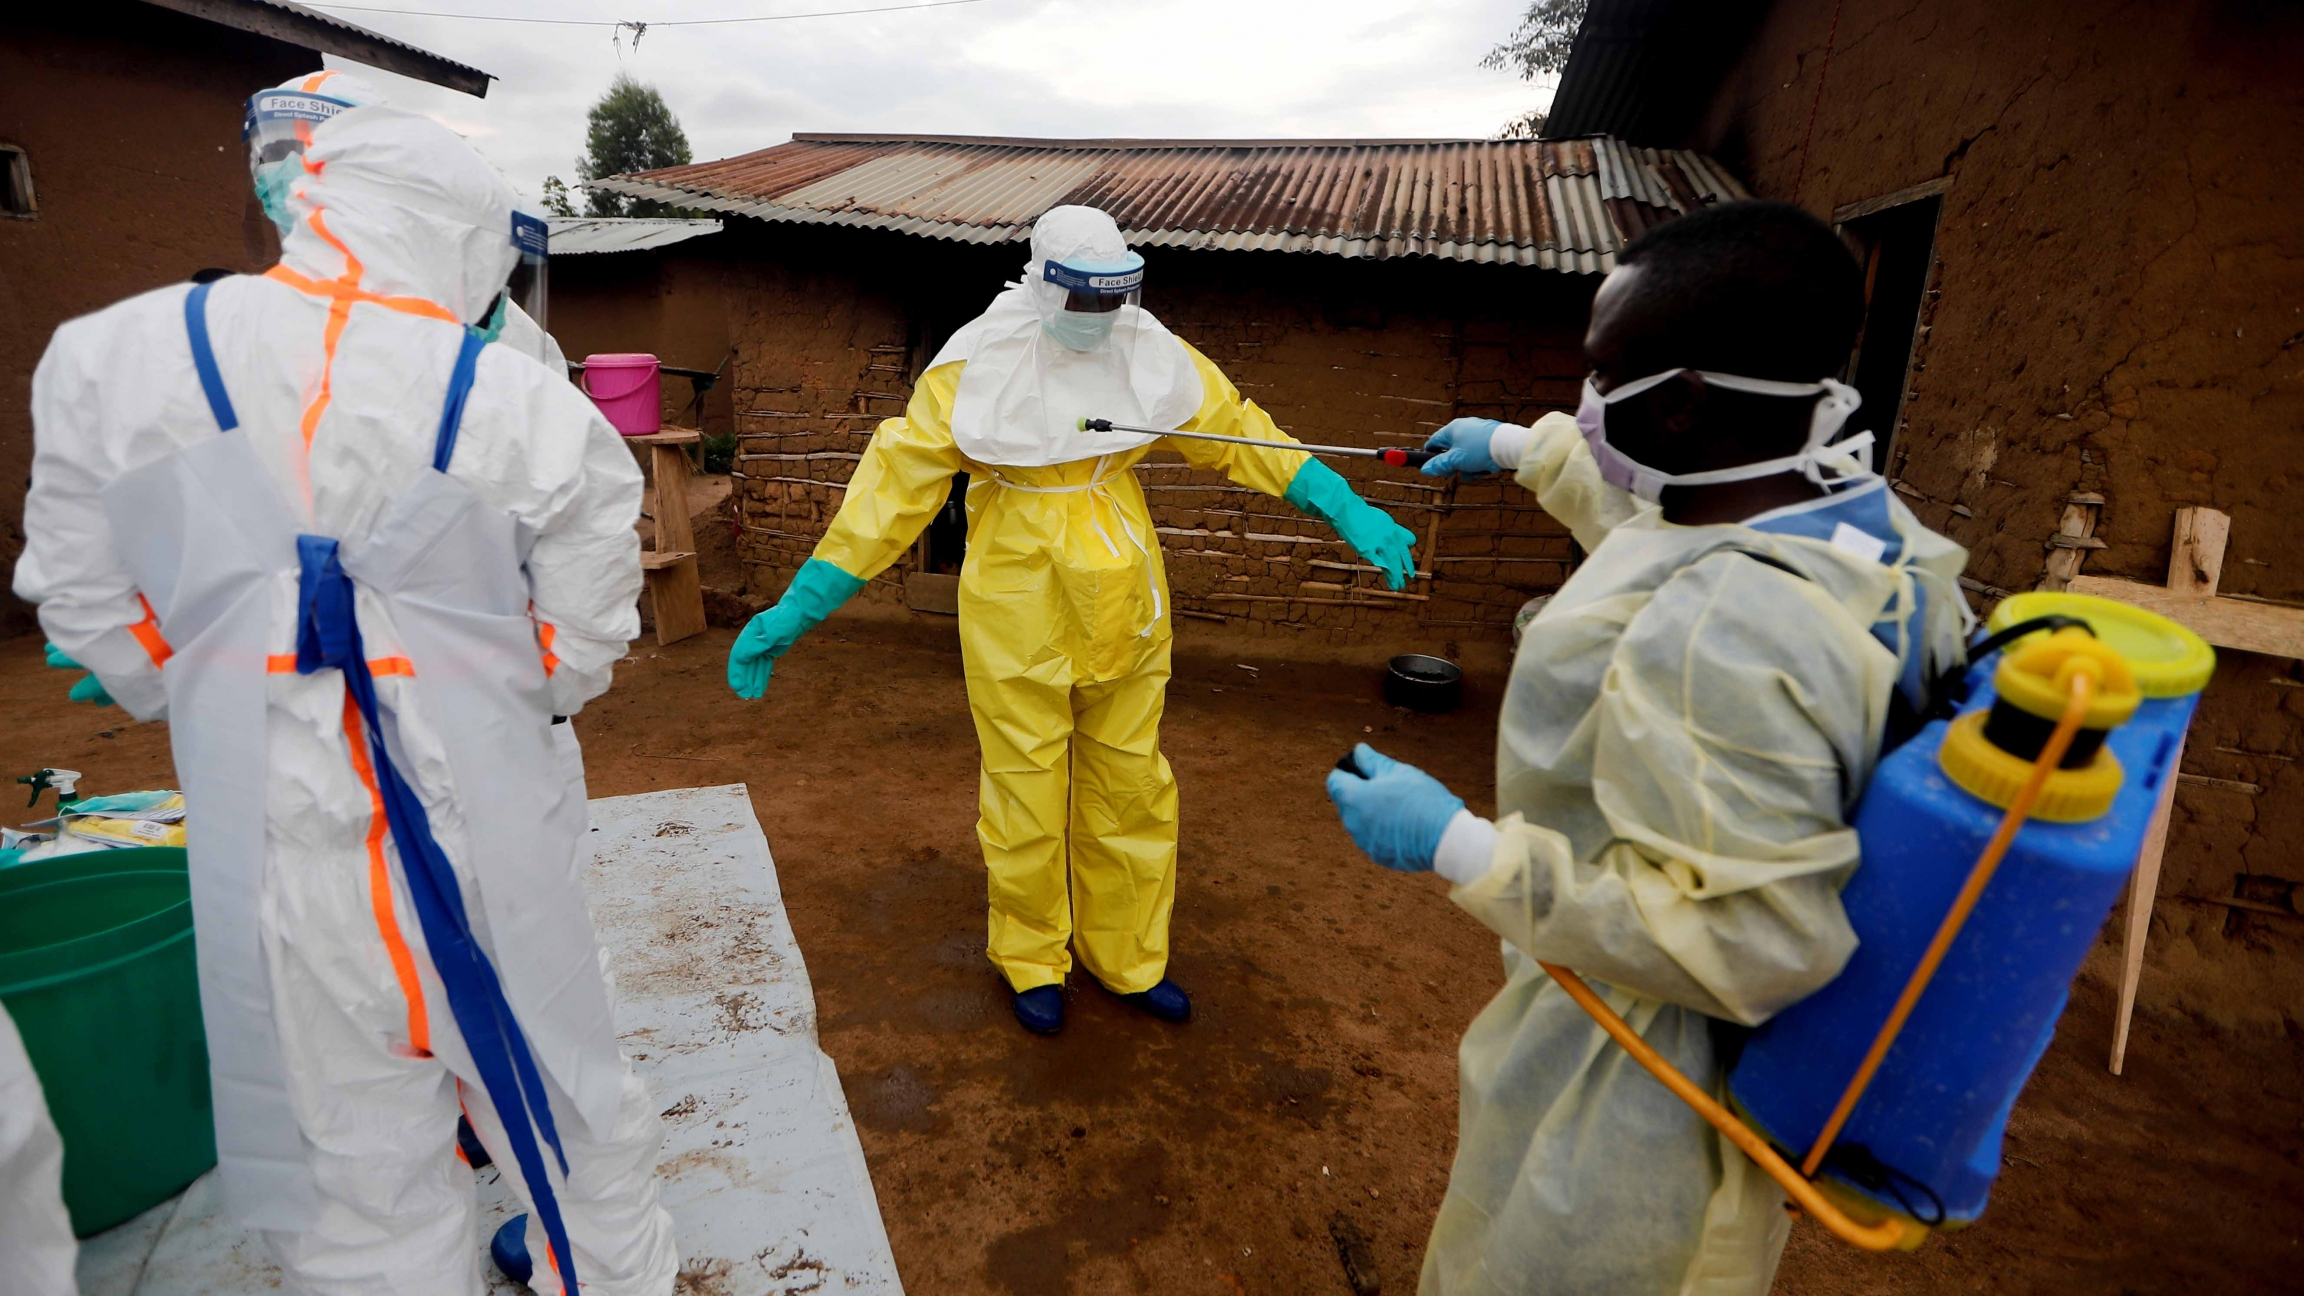 A health care worker who volunteered in the Ebola response, decontaminates his colleague after he entered the house of a woman suspected of dying of Ebola, in the eastern Congolese town of Beni in the Democratic Republic of the Congo, October 2019.